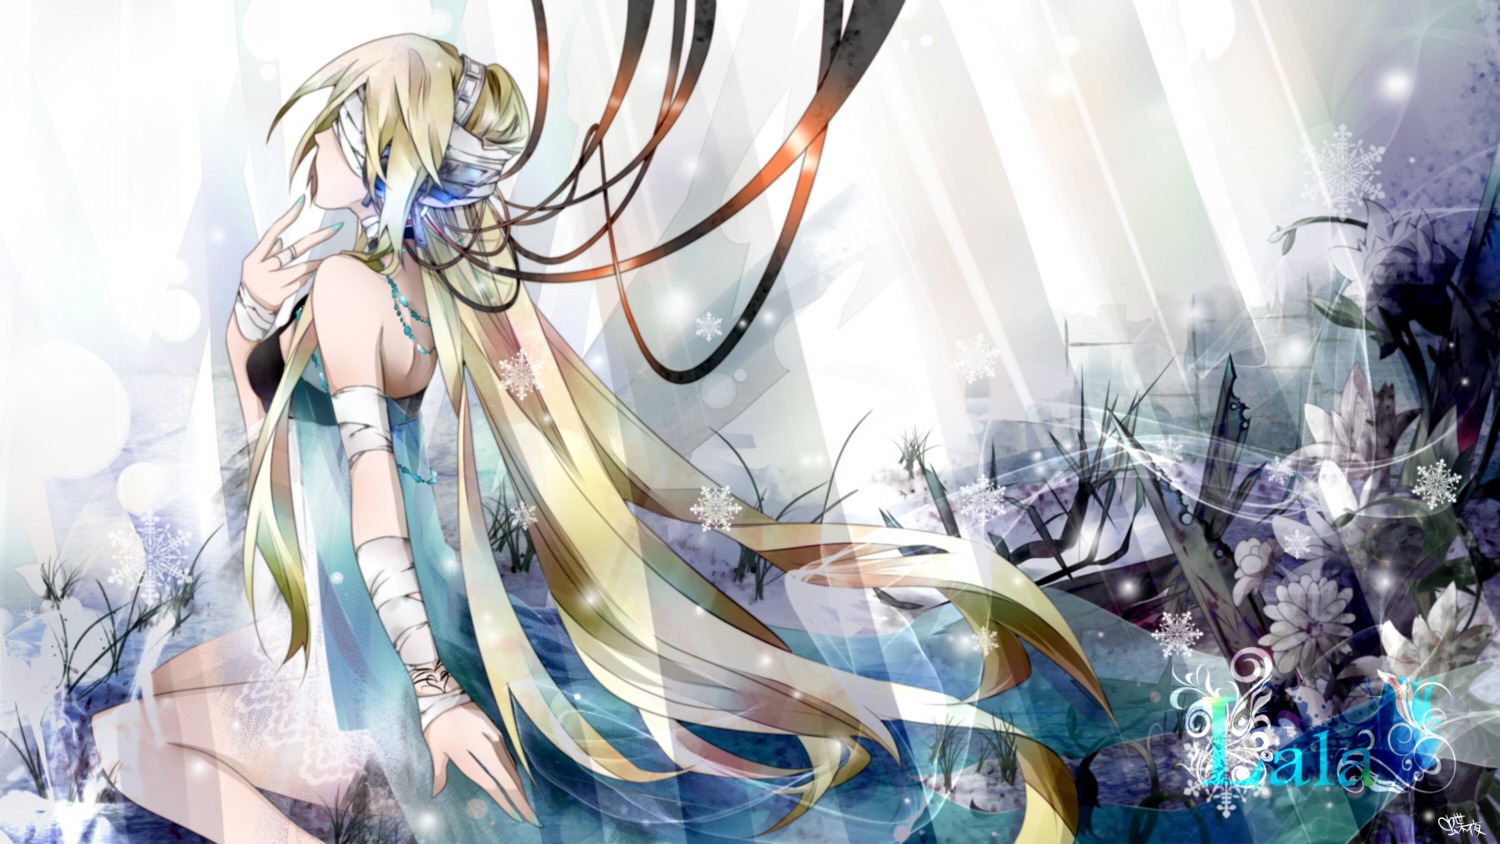 lily vocaloid wallpaper - photo #14